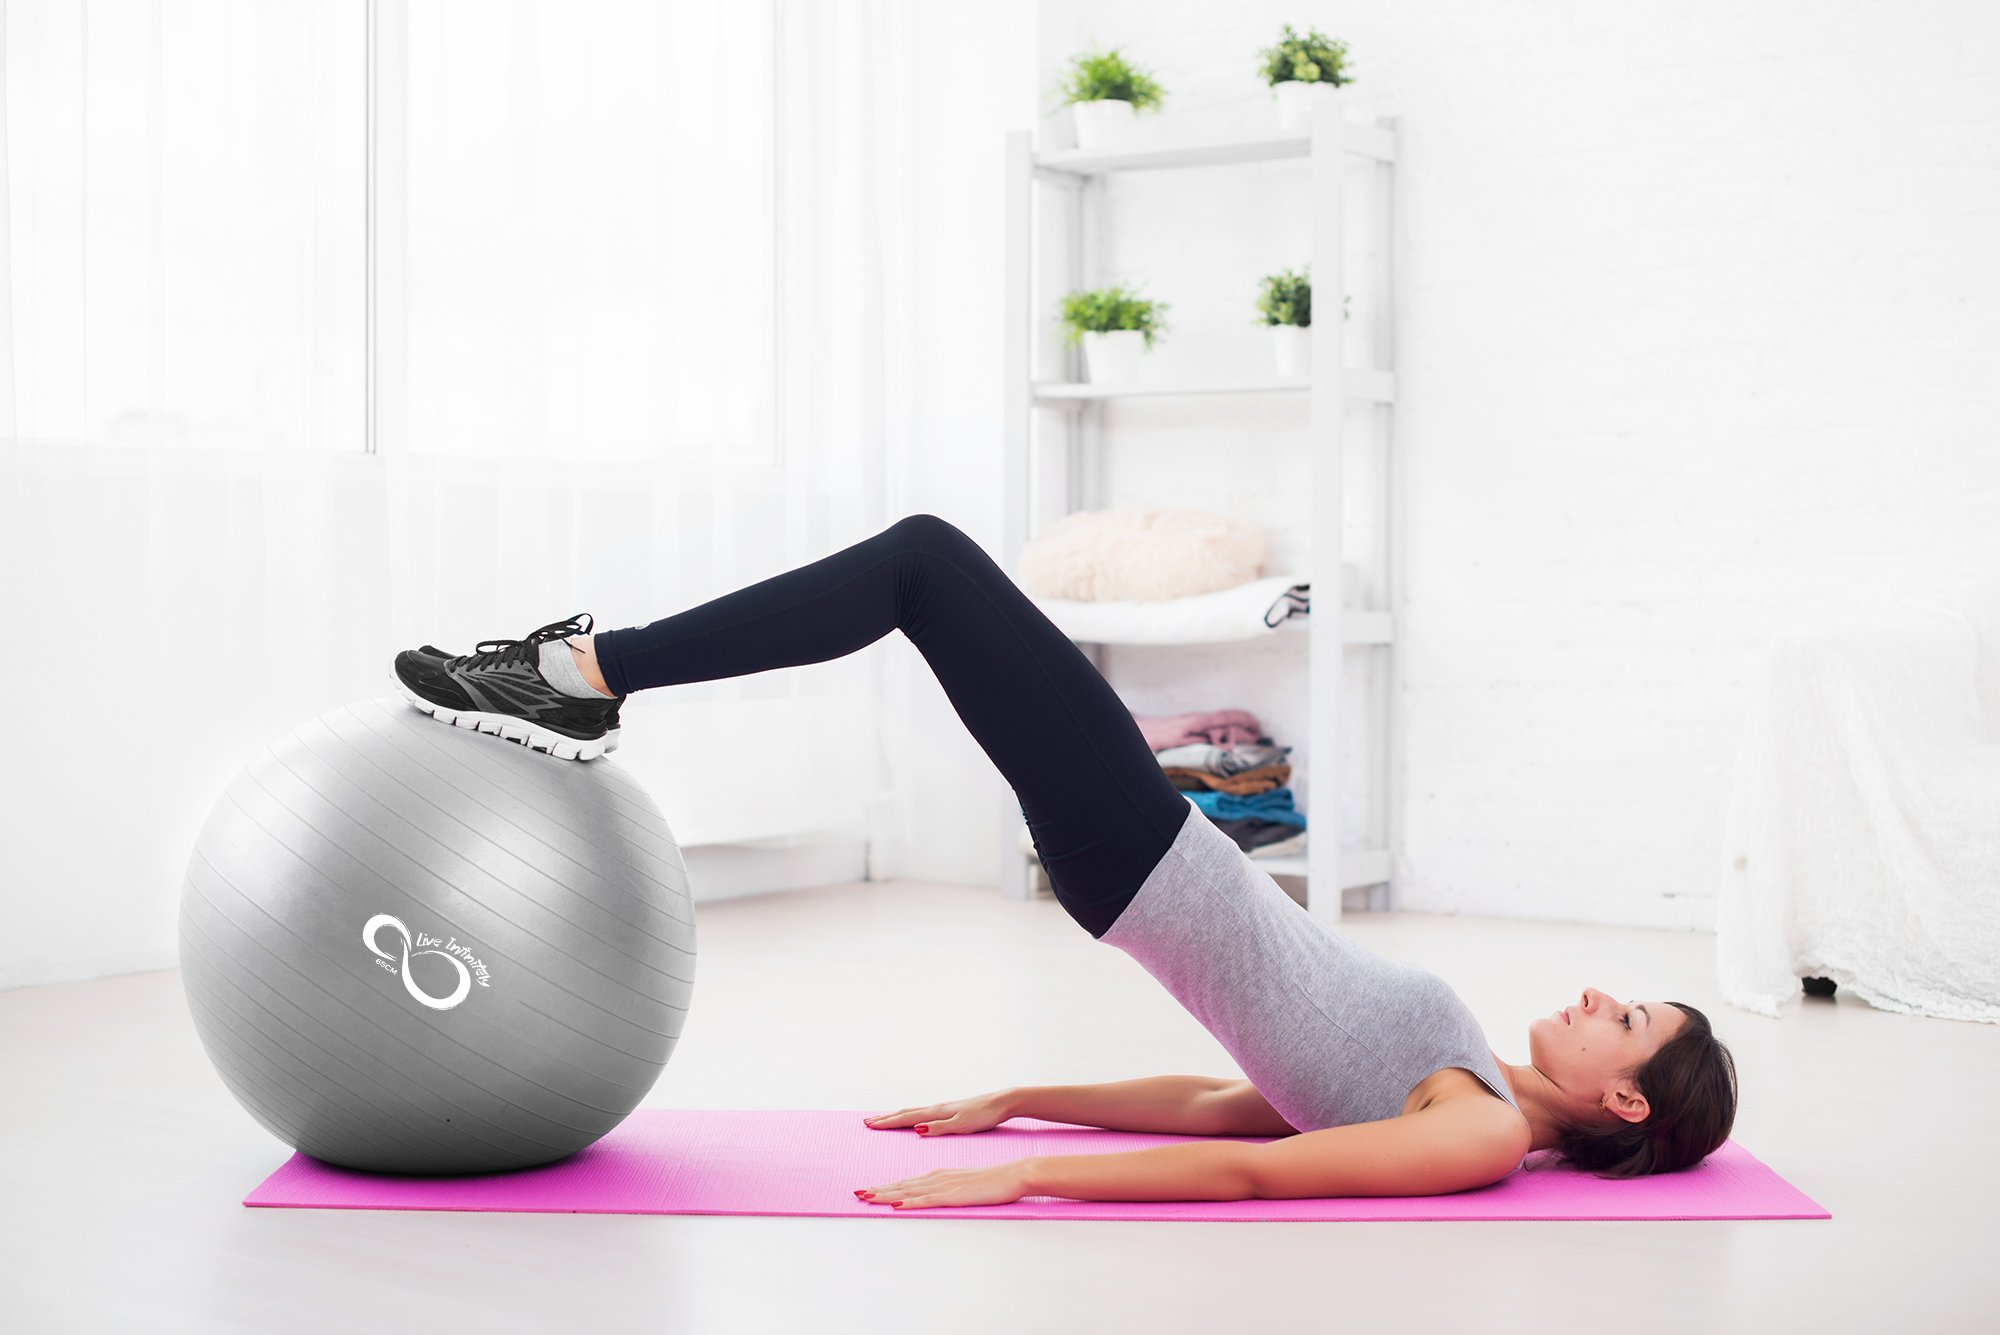 Exercise Ball -Professional Grade Exercise Equipment Anti Burst Tested with Hand Pump- Supports 2200lbs- Includes Workout Guide Access- 55cm/65cm/75cm/85cm Balance Balls (Light Silver, 65 cm) by Live Infinitely (Image #7)